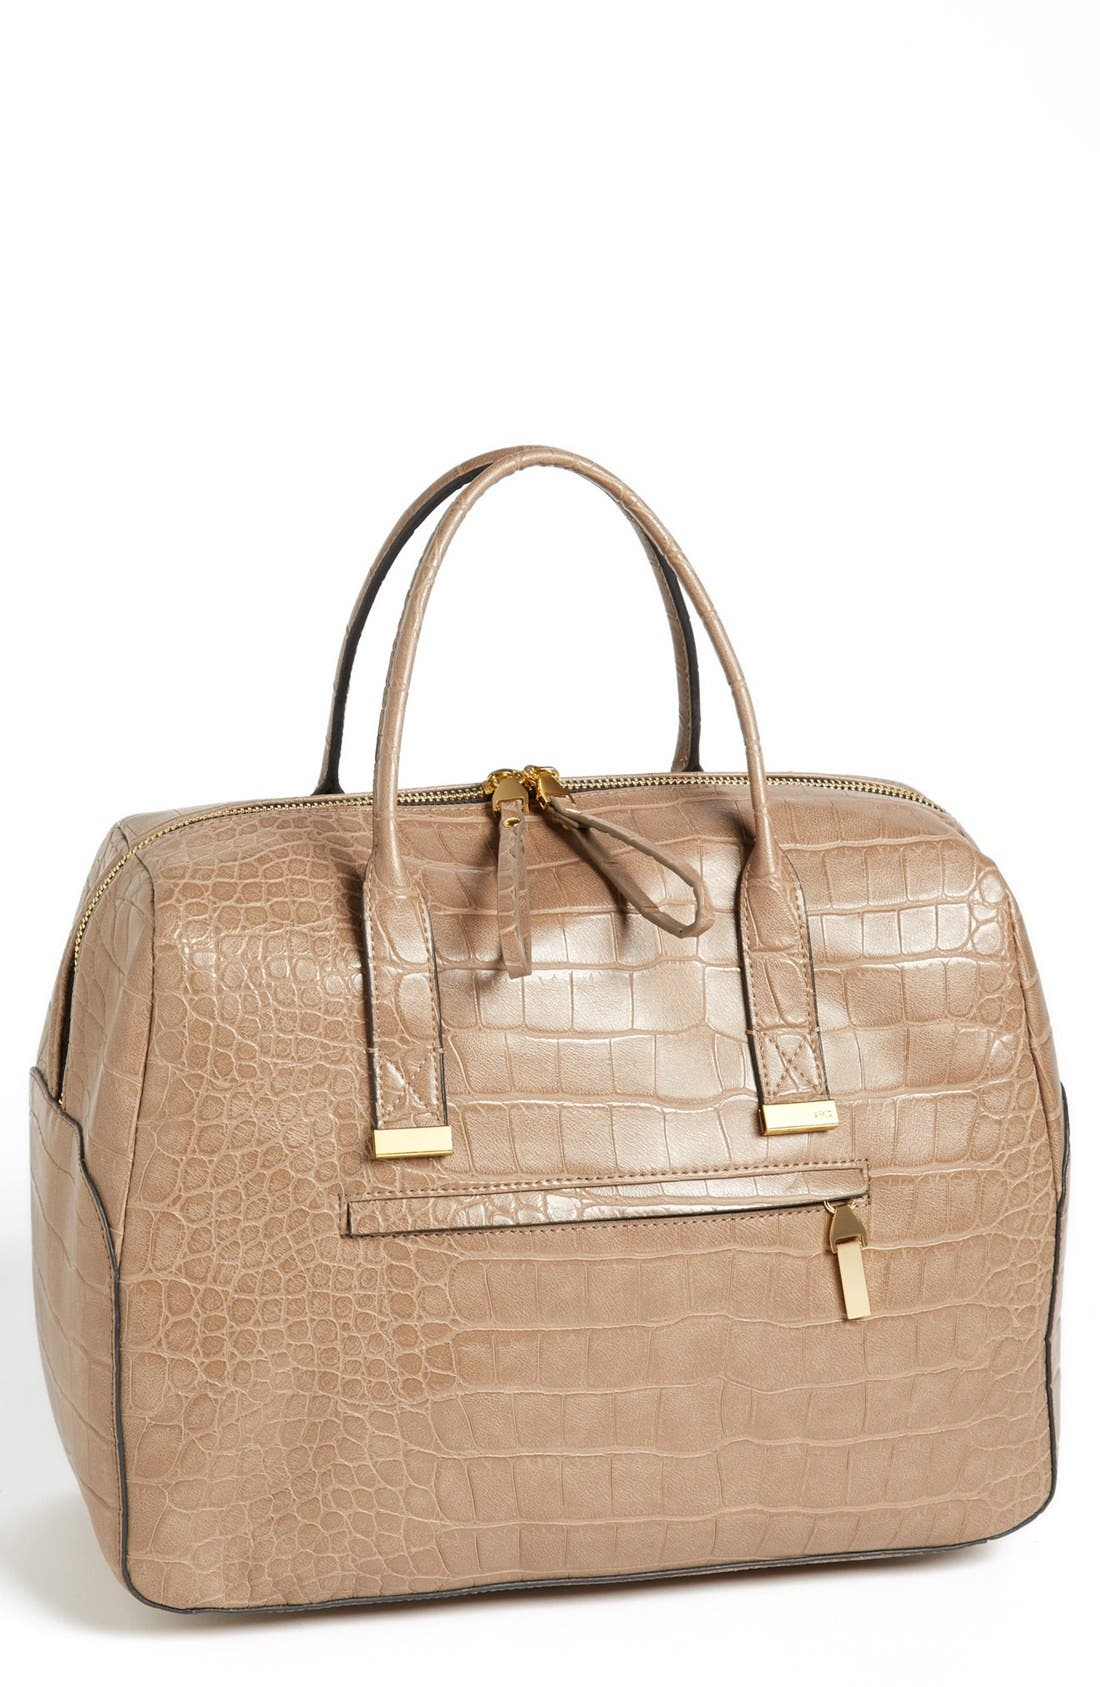 Alternate Image 1 Selected - French Connection 'Animal Mania' Croc Embossed Faux Leather Satchel